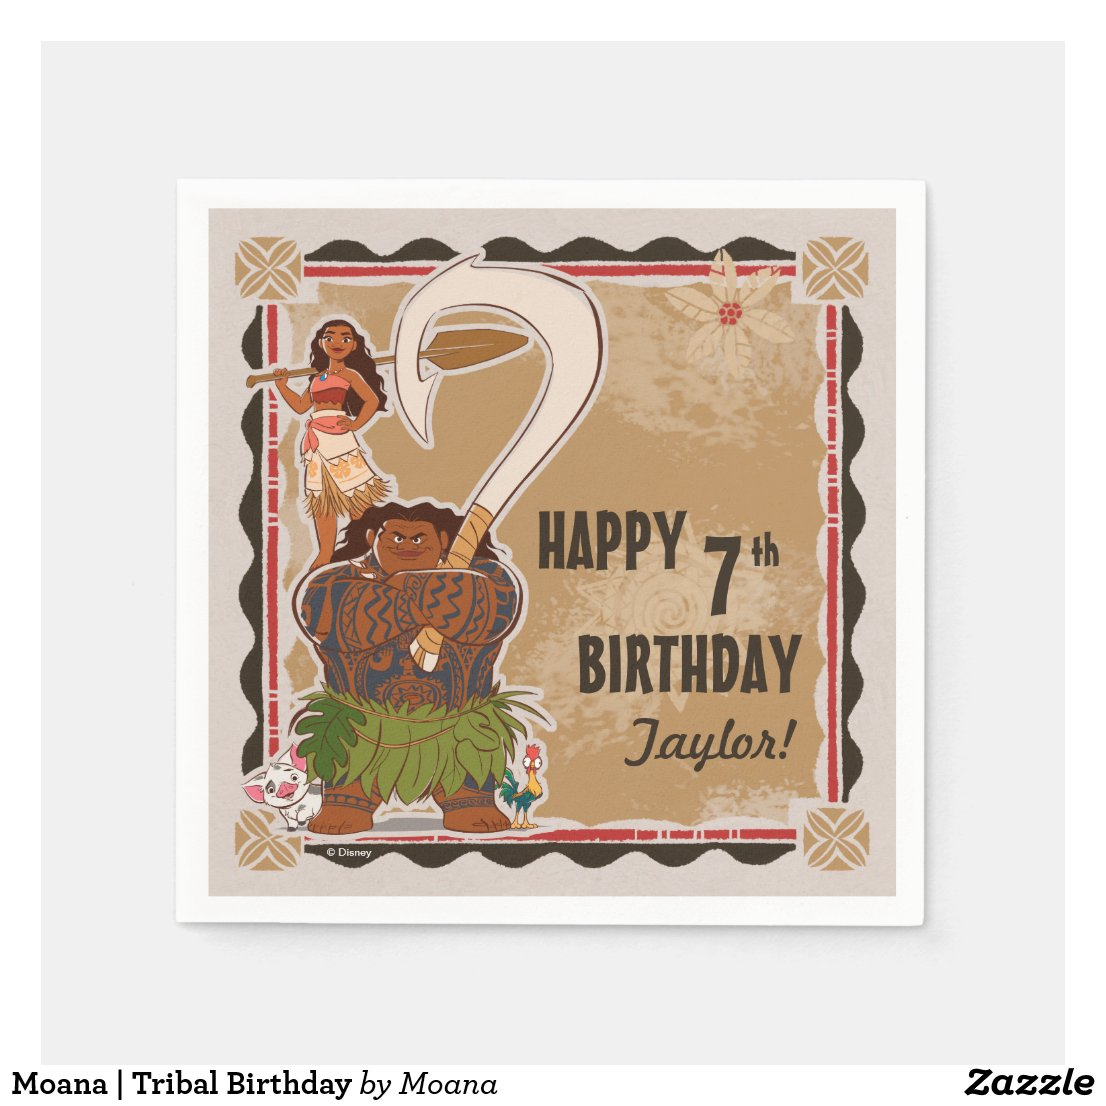 Moana | Tribal Birthday